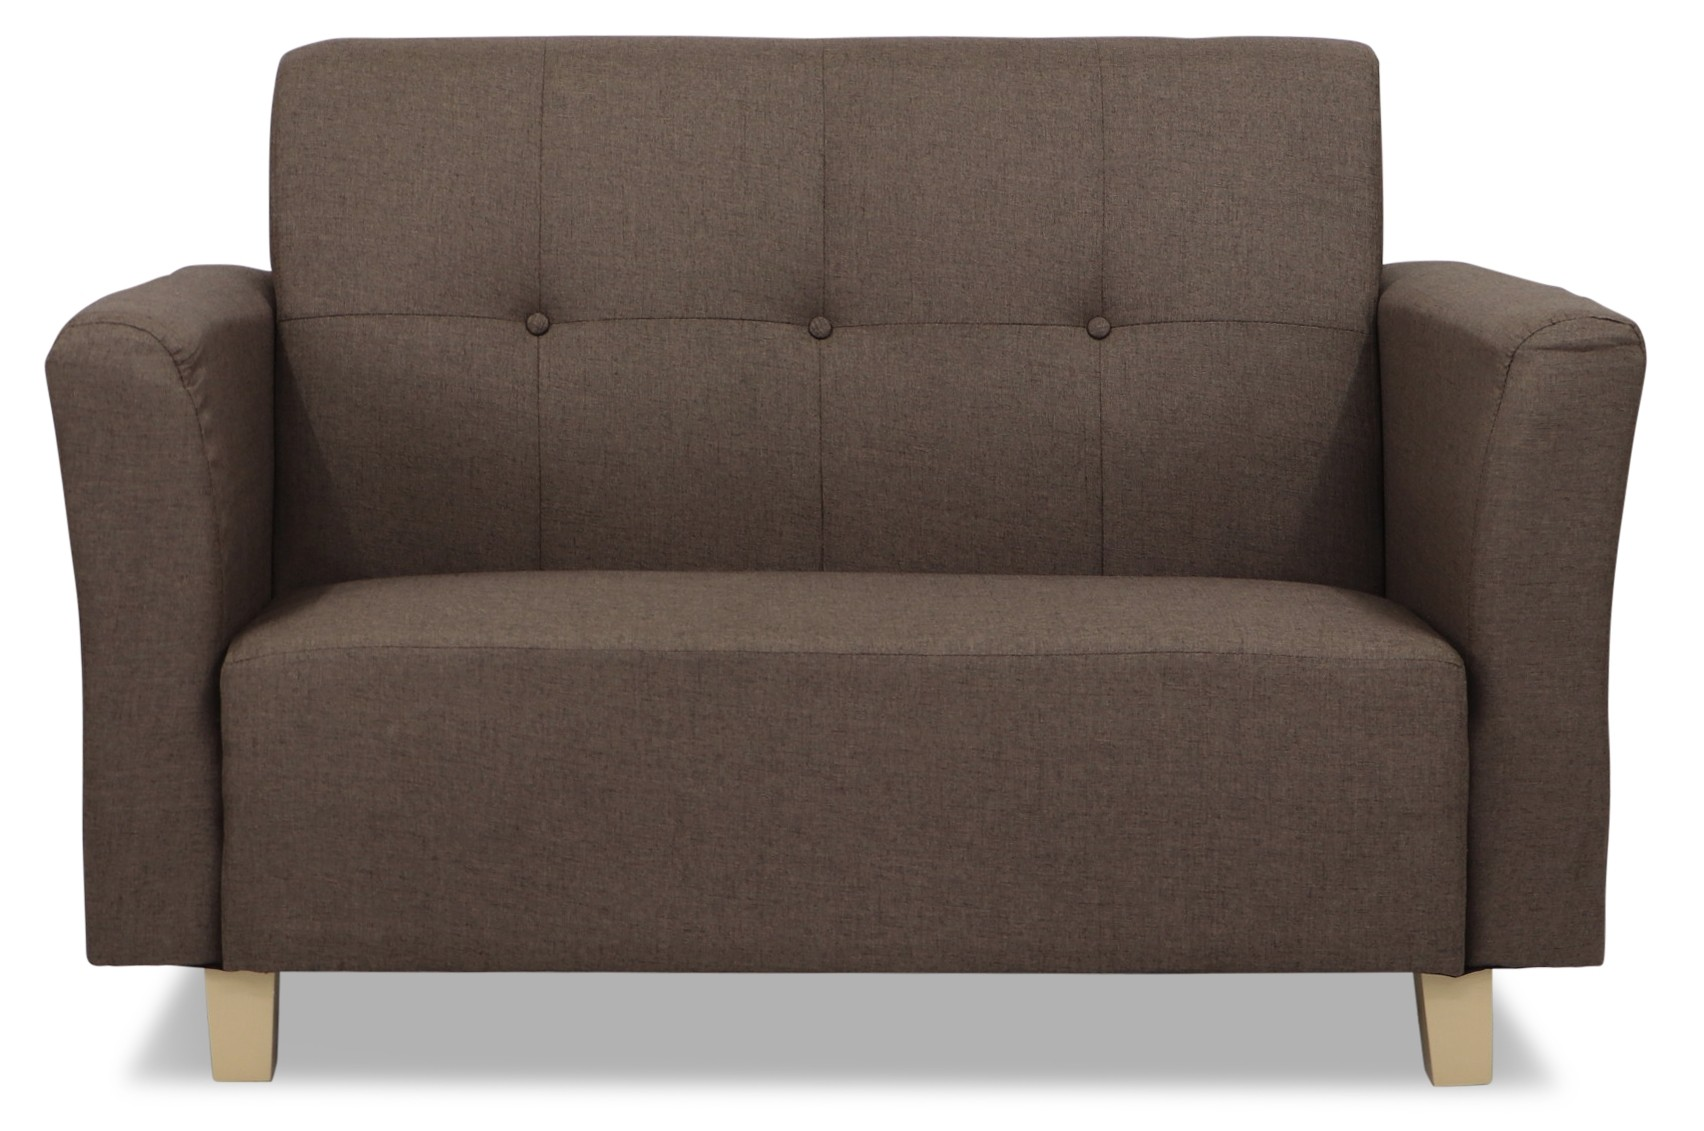 2 seater sofa singapore apartment size vs loveseat halvar furniture and home décor fortytwo